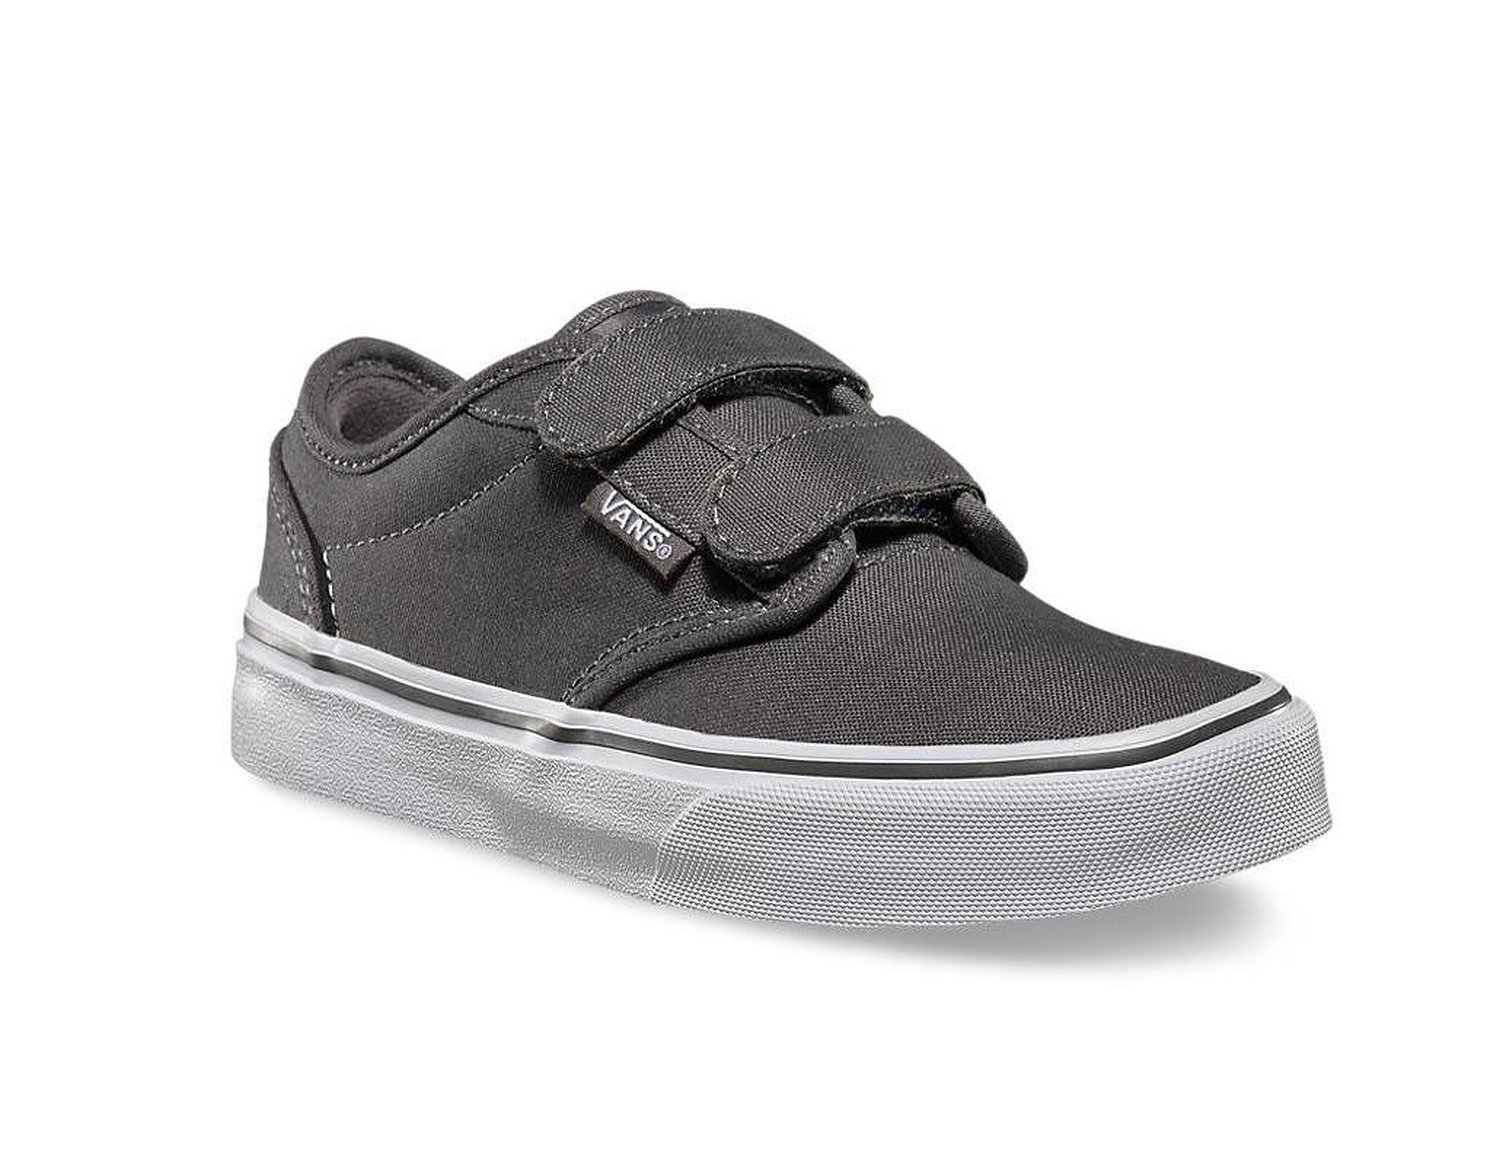 186c34a4dbcc Get Quotations · Vans Atwood Velcro Pewter Skate Sneakers Kids youth s Shoes  0RQY4WV